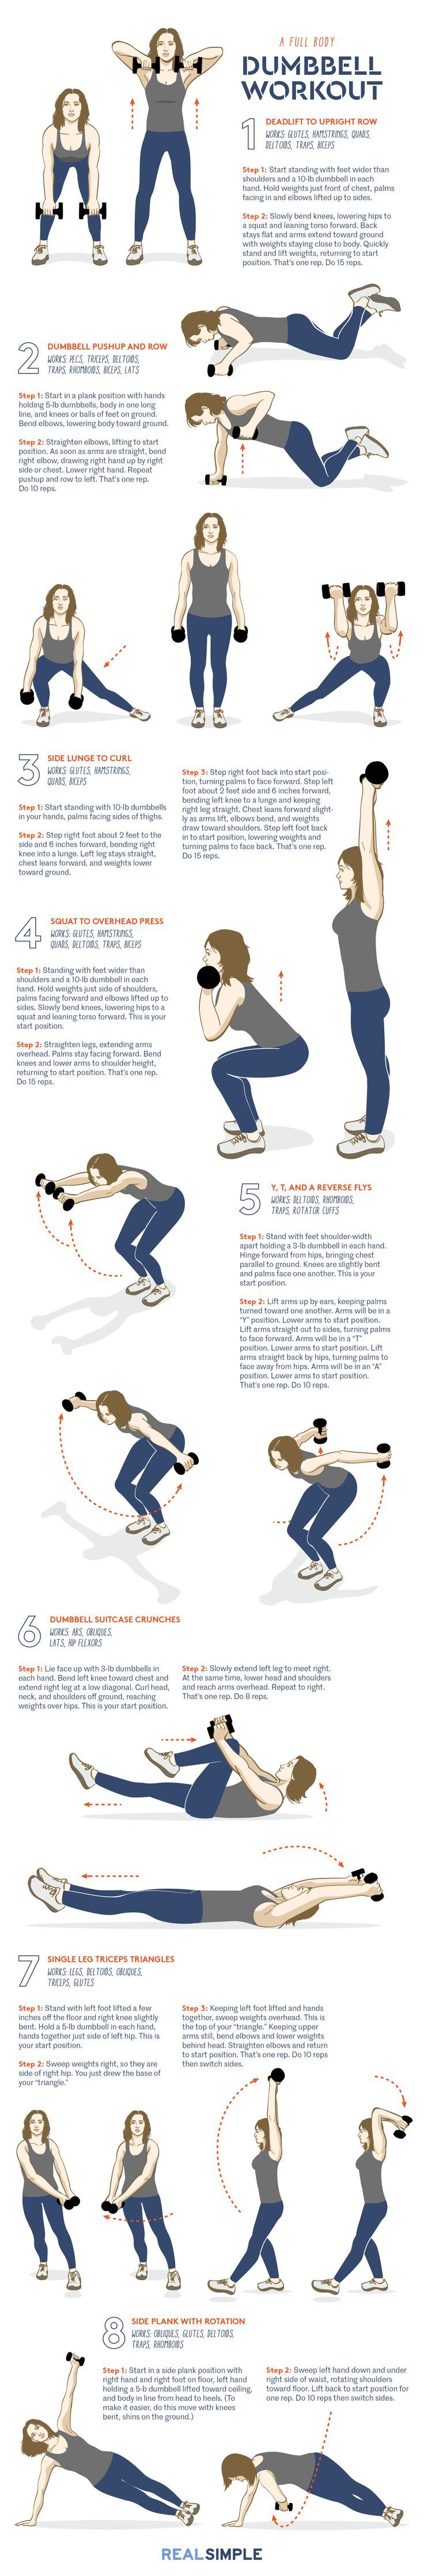 The moves call for three-, five-, and 10-pound dumbbells, but you can also work with whatever weights you have available. Do this sequence two to three times a week. Start with one set of each move. As you get stronger, do up to four rounds in a circuit. After six weeks you can expect to see improvements in strength, muscle tone, and endurance.